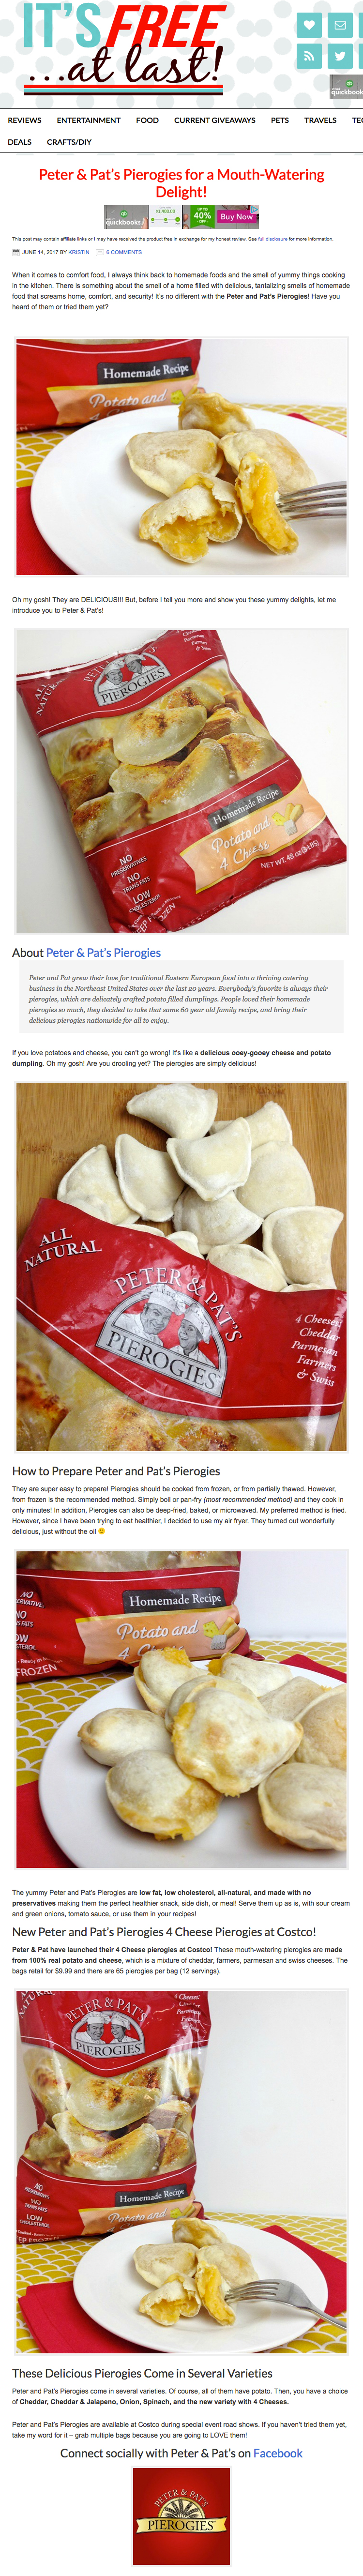 Peter & Pat's Pierogies featured on  It's Free At Last .